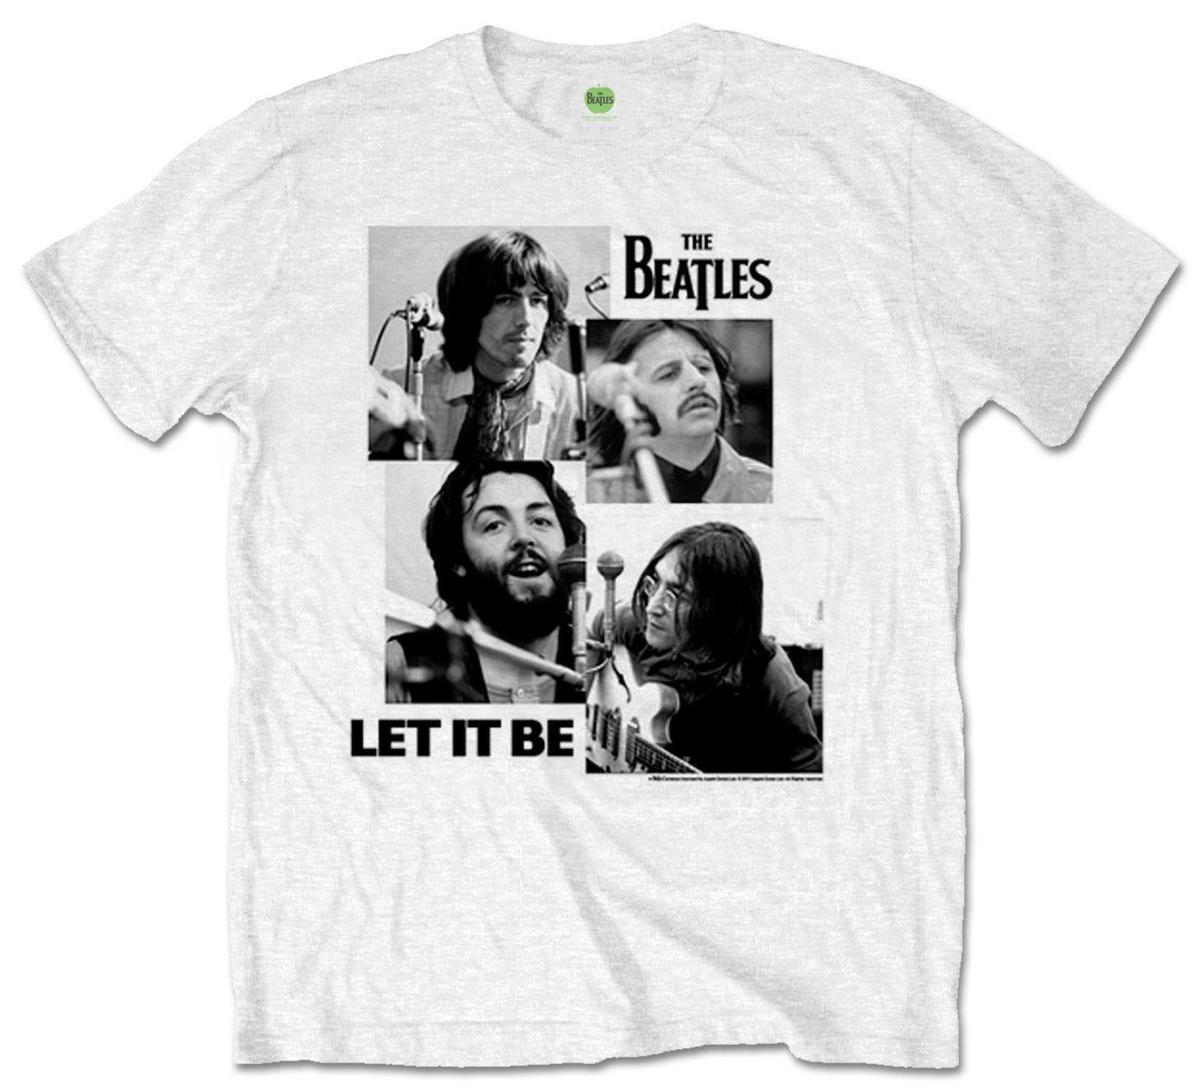 b5464469 Official Beatles Let It Be T Shirt Classic Music Album Cover Mens White  Design Novelty Cool Tops Men Short Sleeve T Shirt Funny Vintage T Shirts T  Shirts ...